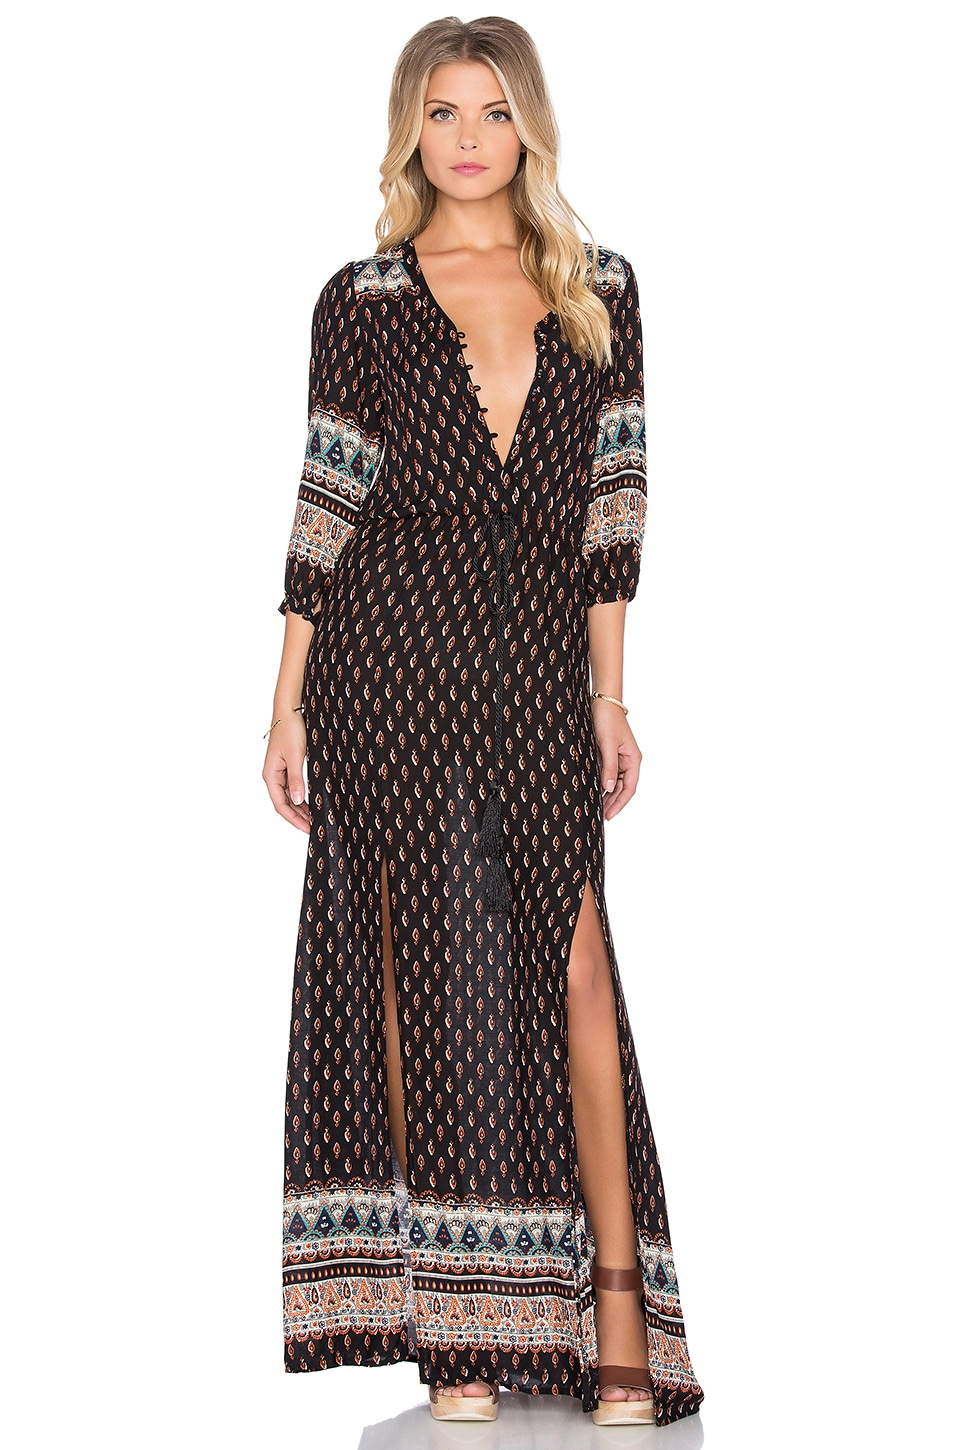 Lost in Lunar Wilde Heart Be Mine Maxi Dress in Print